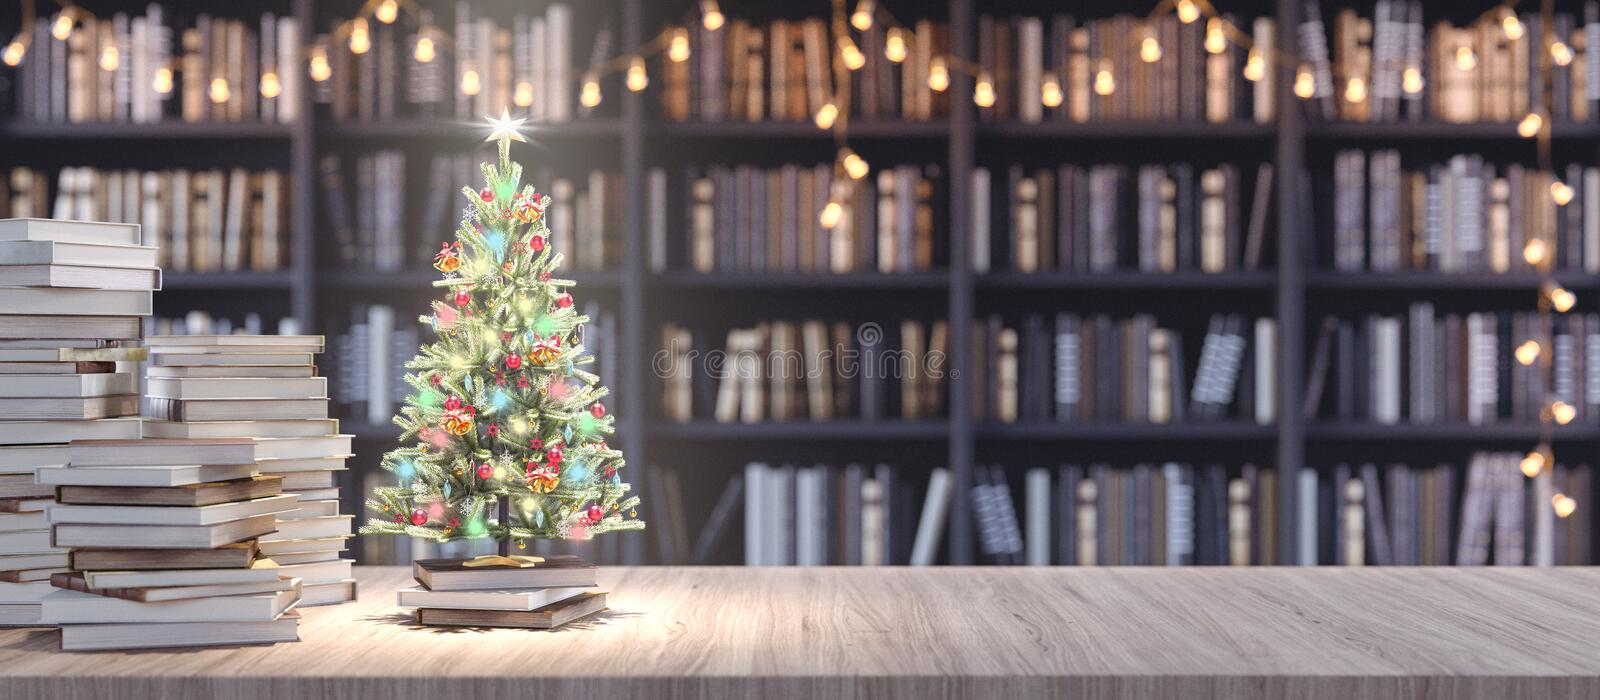 Decorated Christmas tree on Bookshelf in the library with old books, Holidays in Bookstore concept 3d render. 3d illustration vector illustration